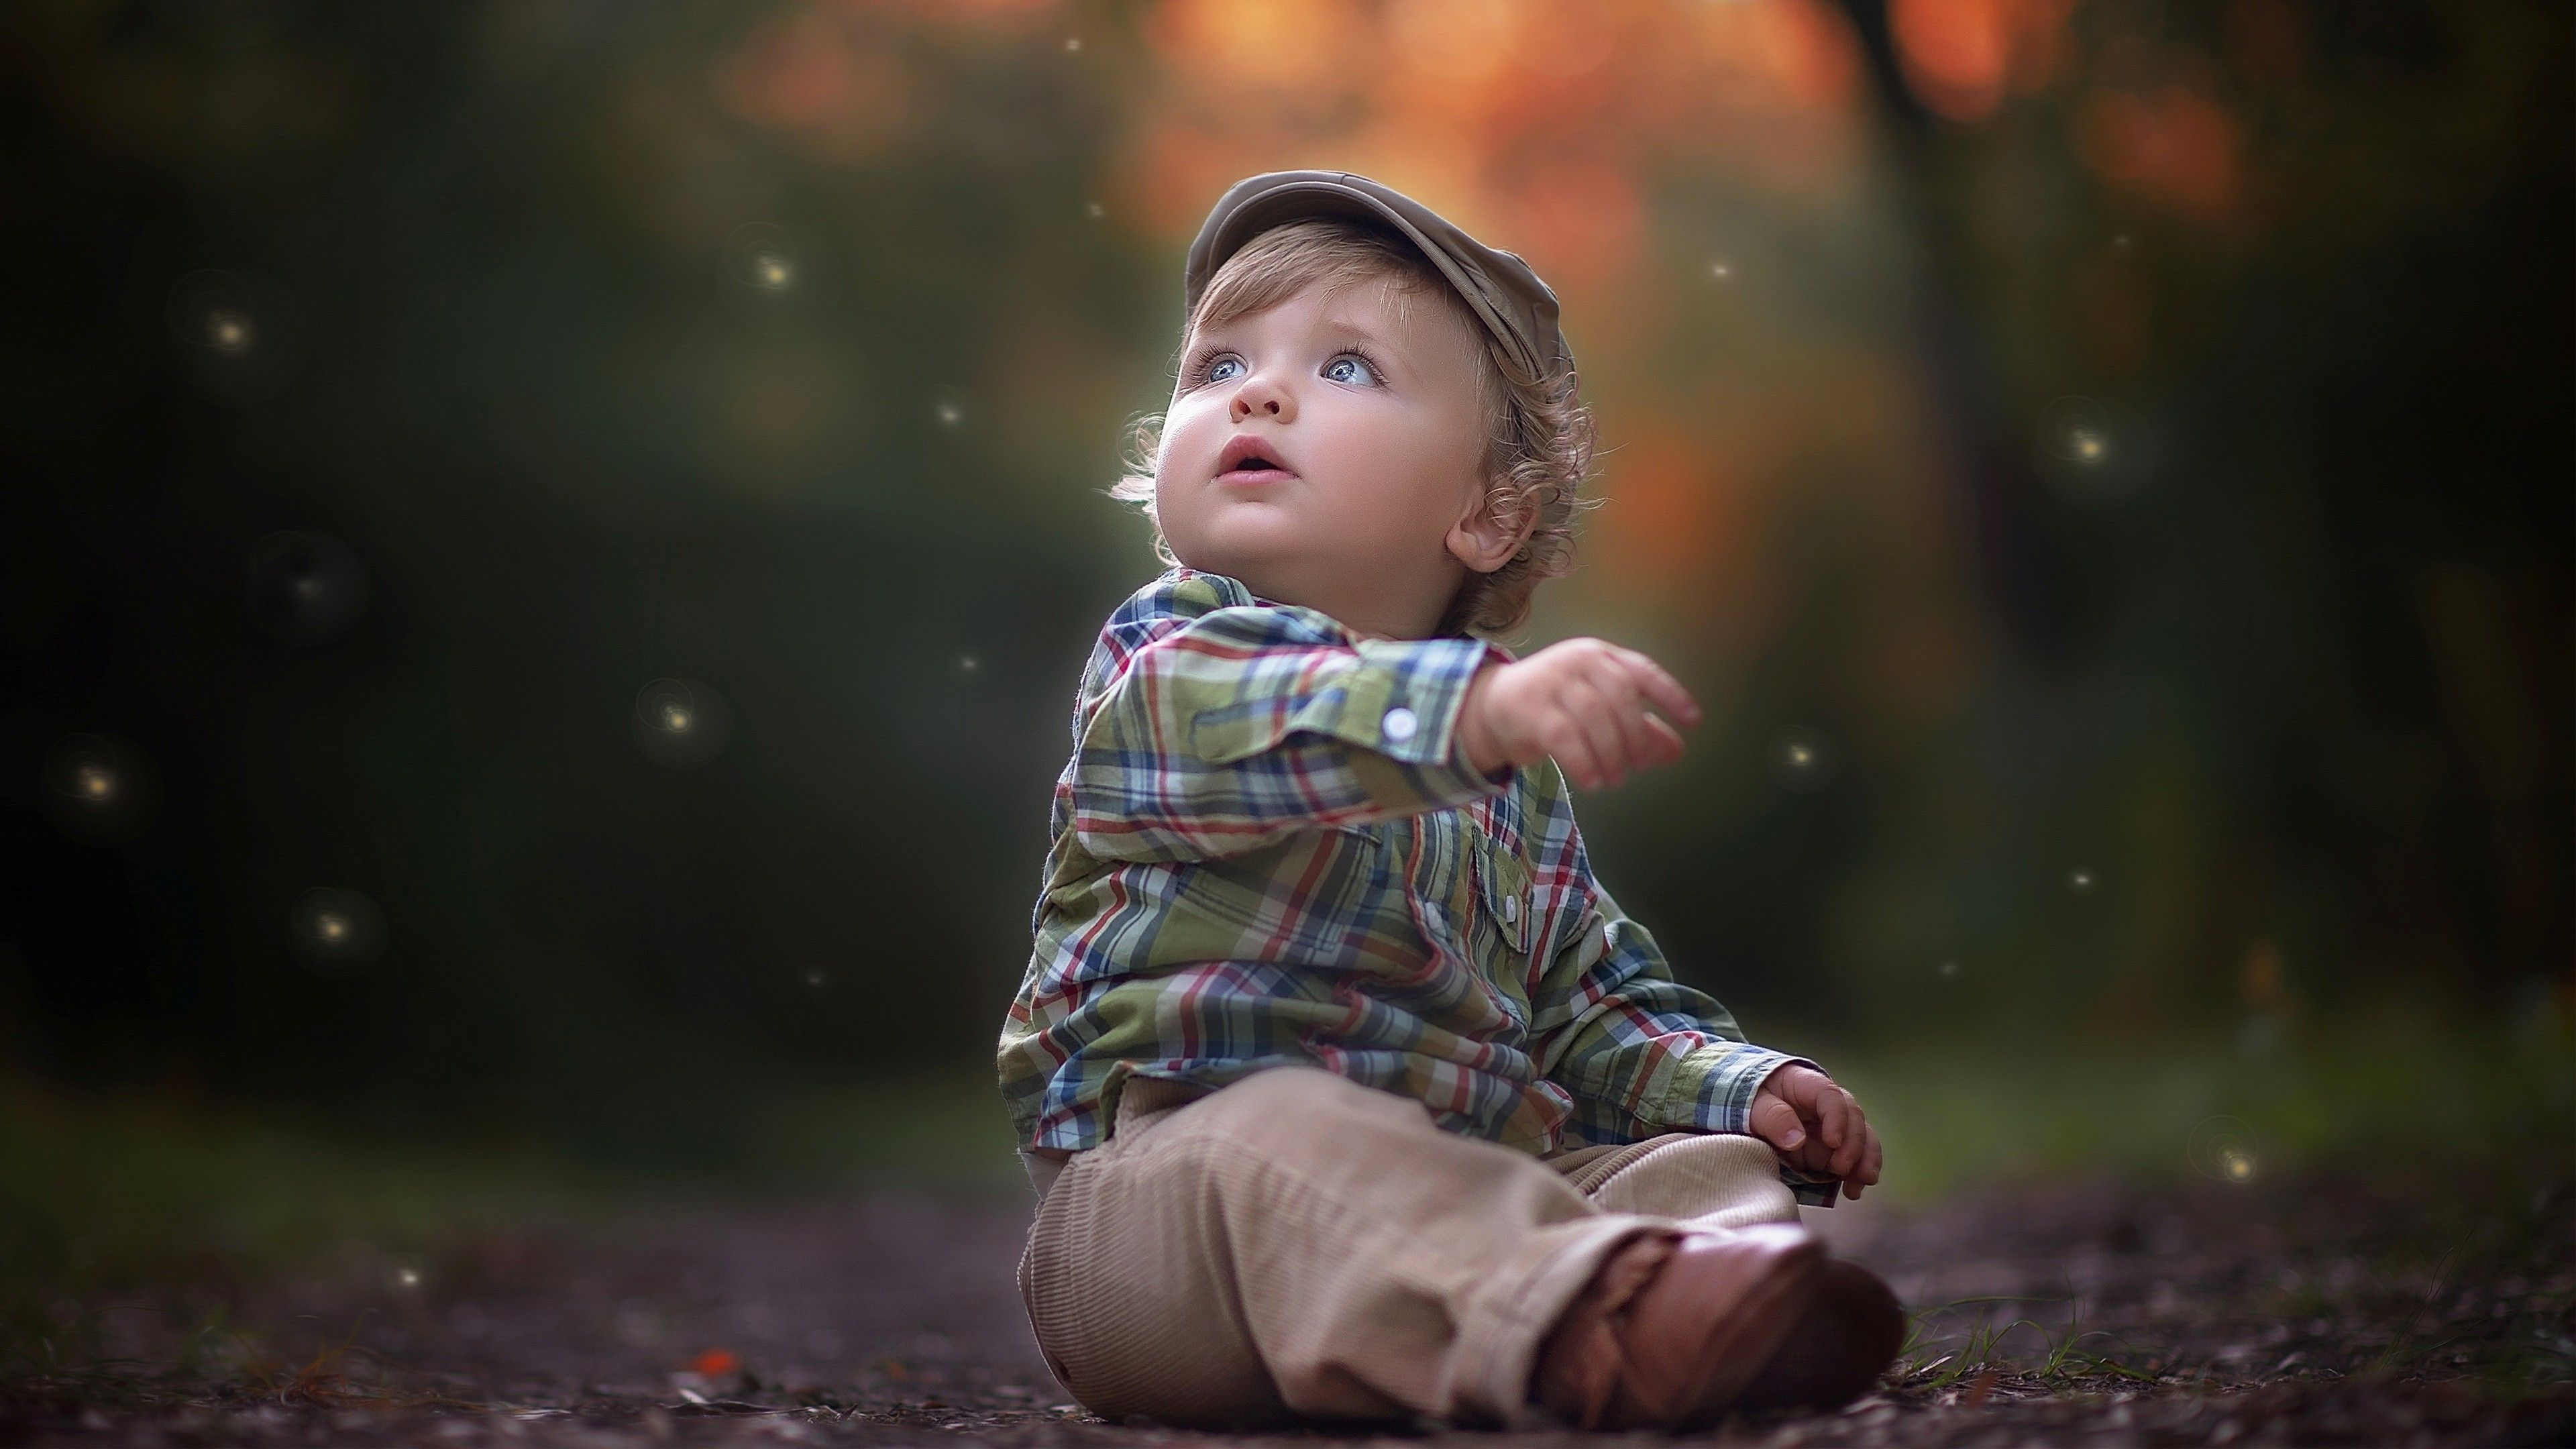 3840x2160 Ultra Hd 4k Resolutions 3840 X 2160 Original Description Download Cute Little Boy Cute Wal Cute Baby Wallpaper Cute Baby Photos Cute Boy Wallpaper